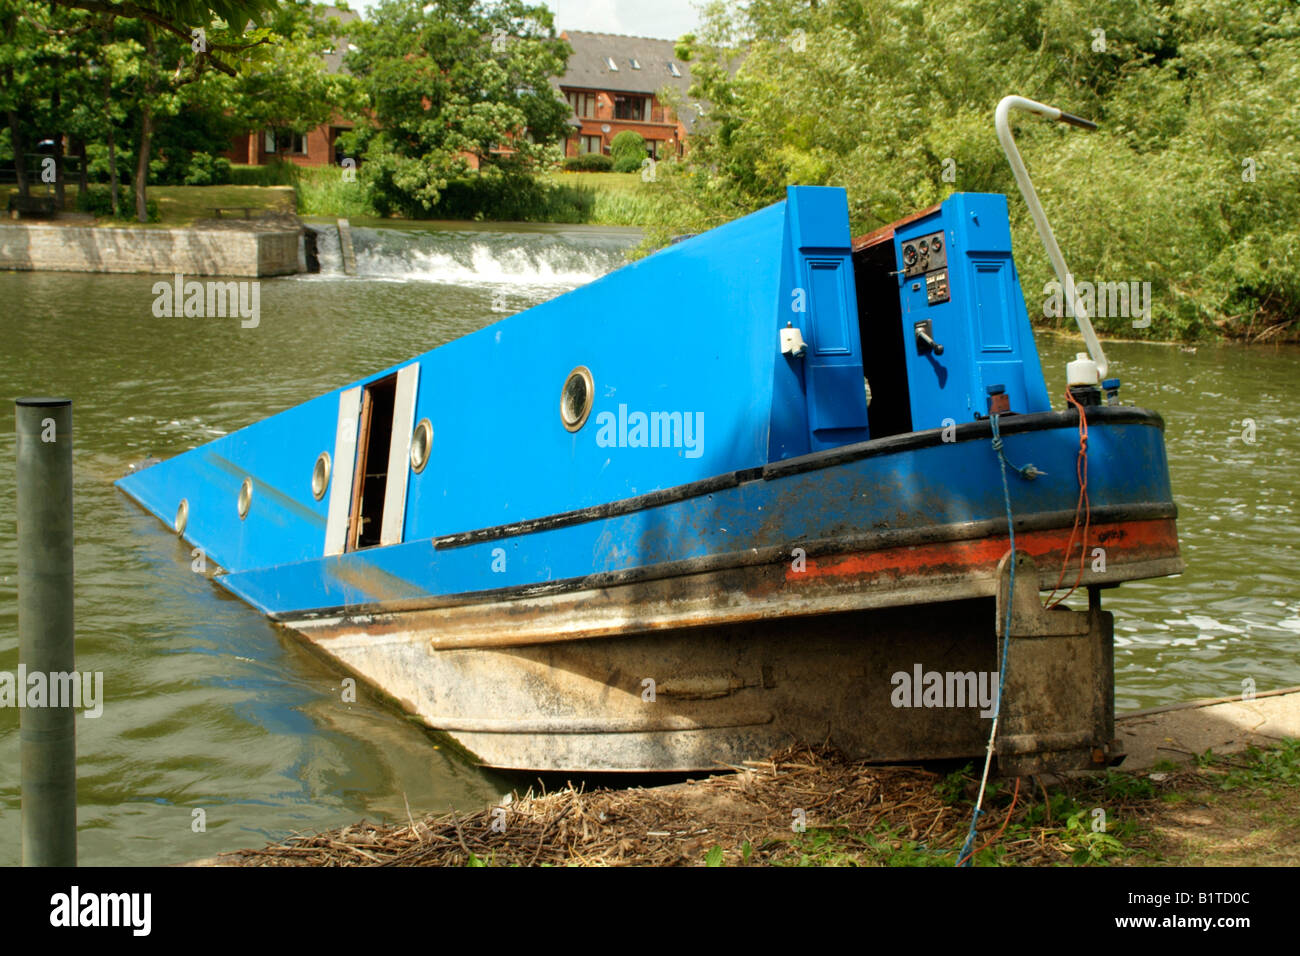 Canalboat sinking into the River Avon at Stratford upon Avon England UK - Stock Image